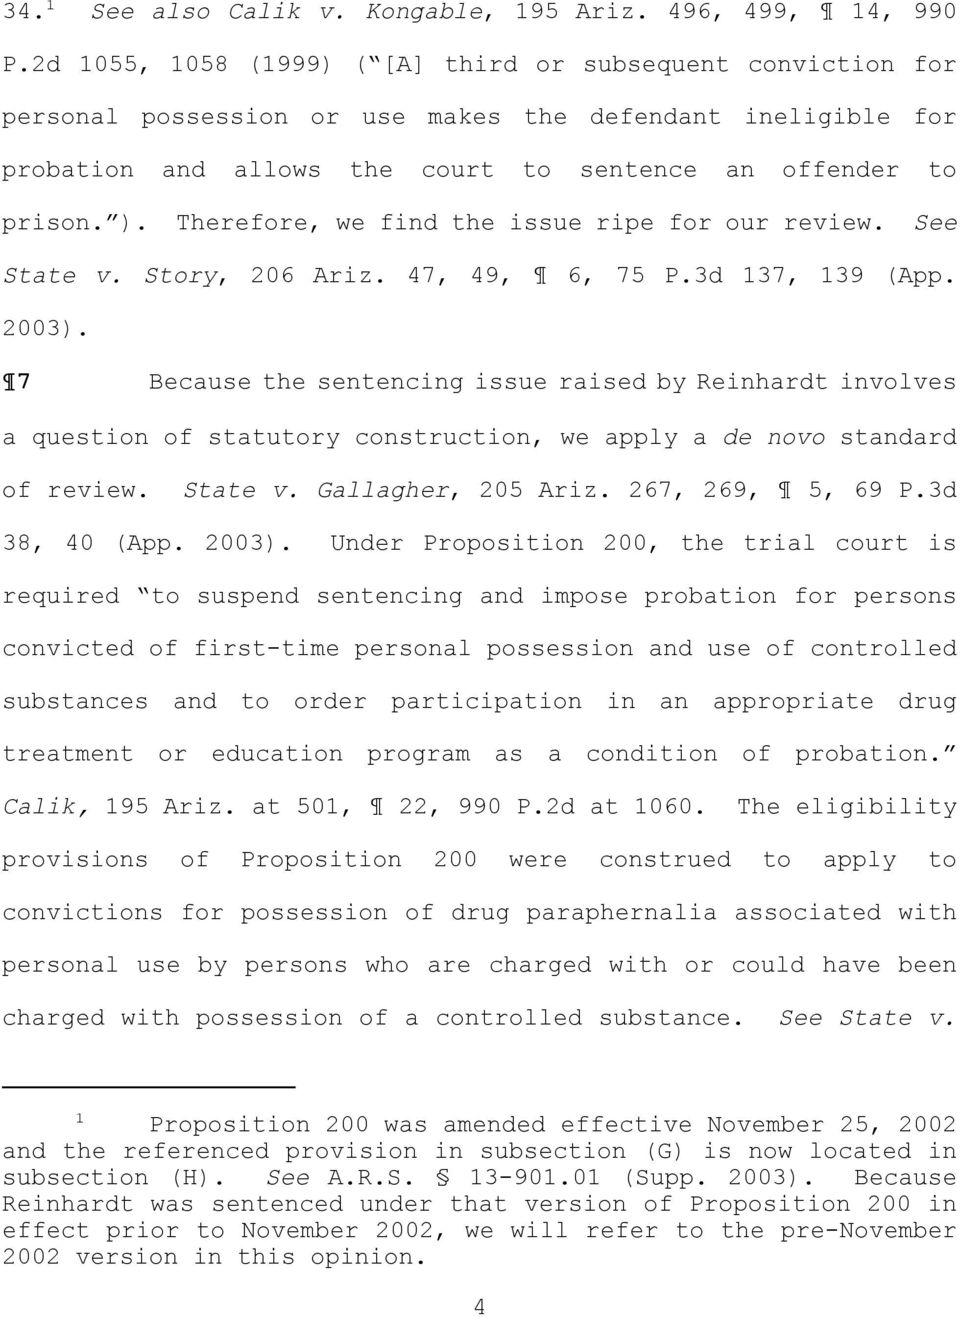 . Therefore, we find the issue ripe for our review. See State v. Story, 206 Ariz. 47, 49, 6, 75 P.3d 137, 139 (App. 2003.